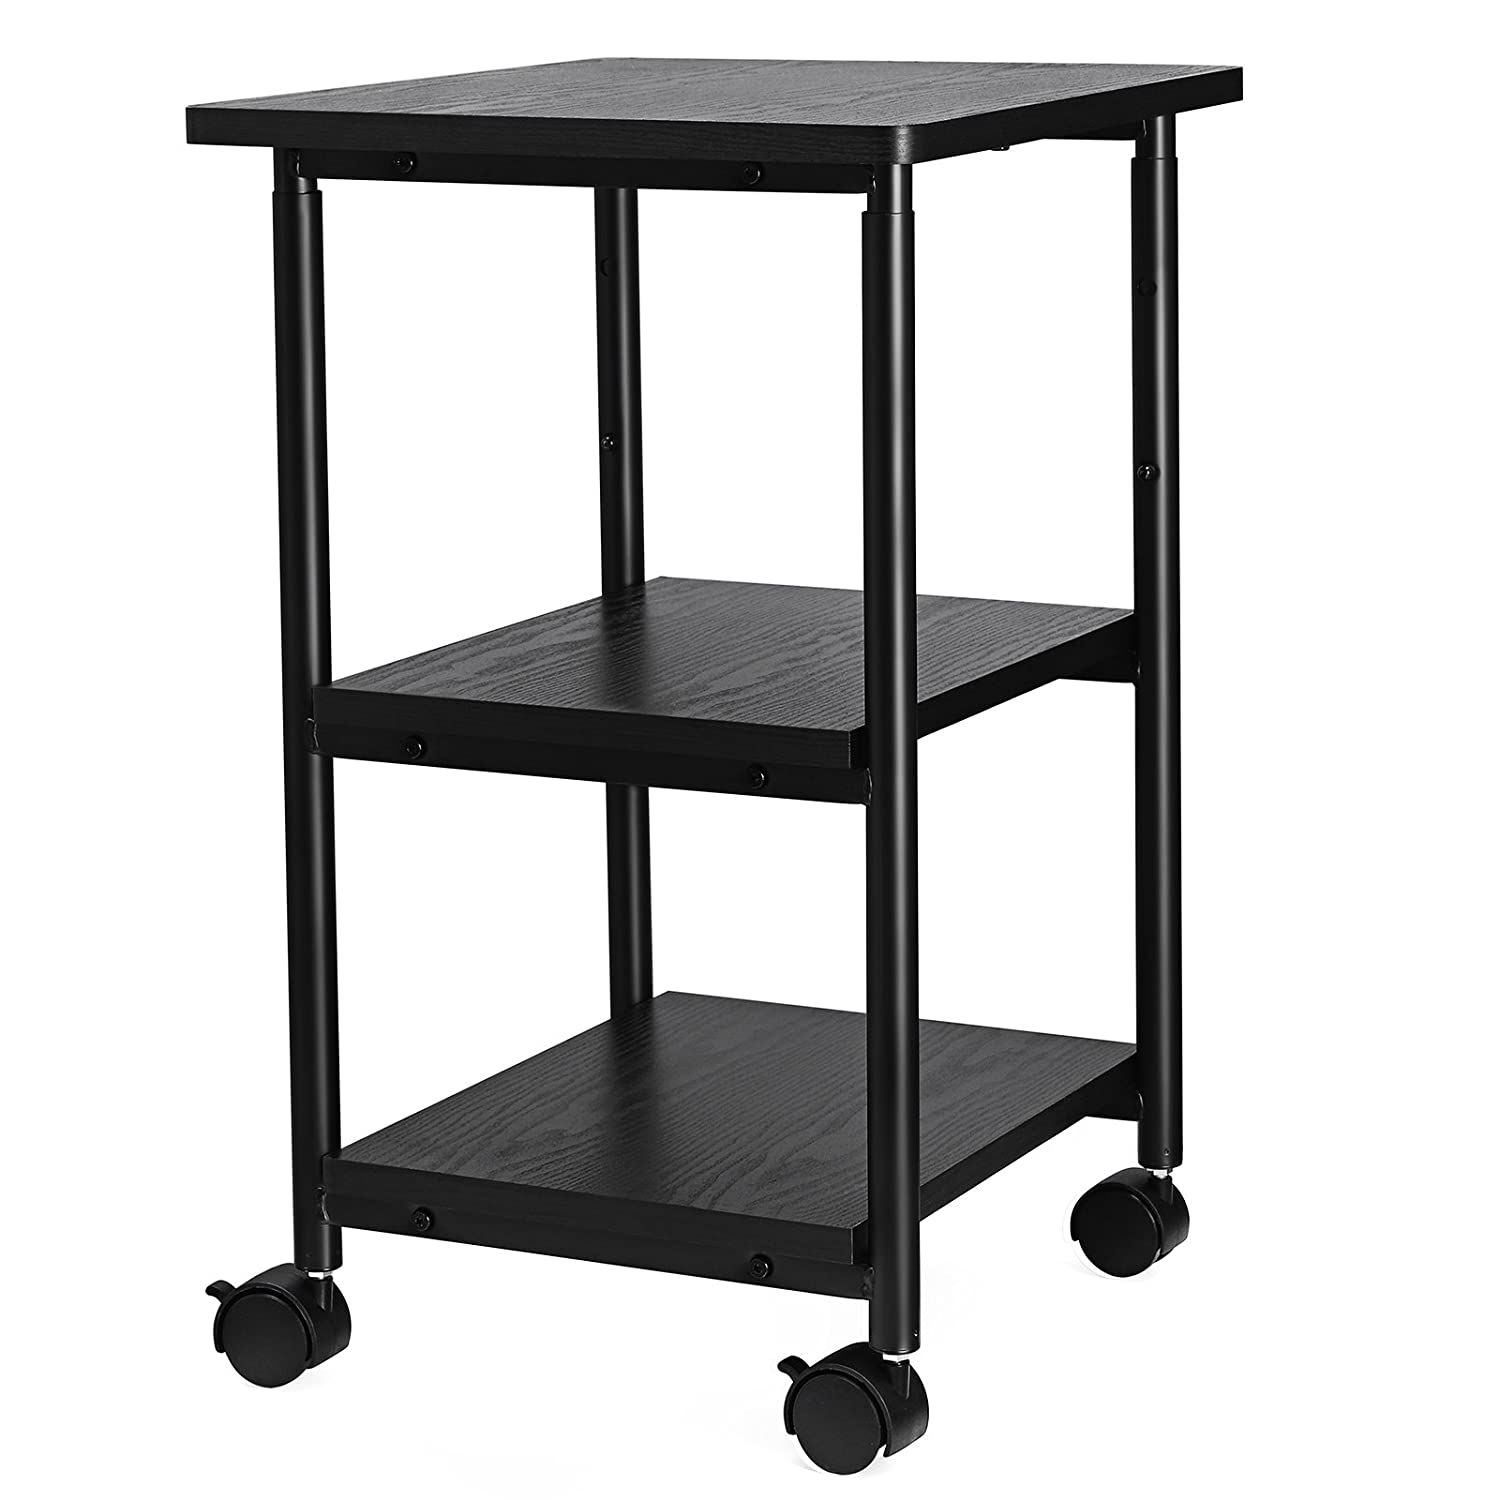 SONGMICS Adjustable Printer Stand Desk Mobile Machine Cart with 2 Shelves Heavy Duty Storage Trolley for Office Home Black UOPS03B